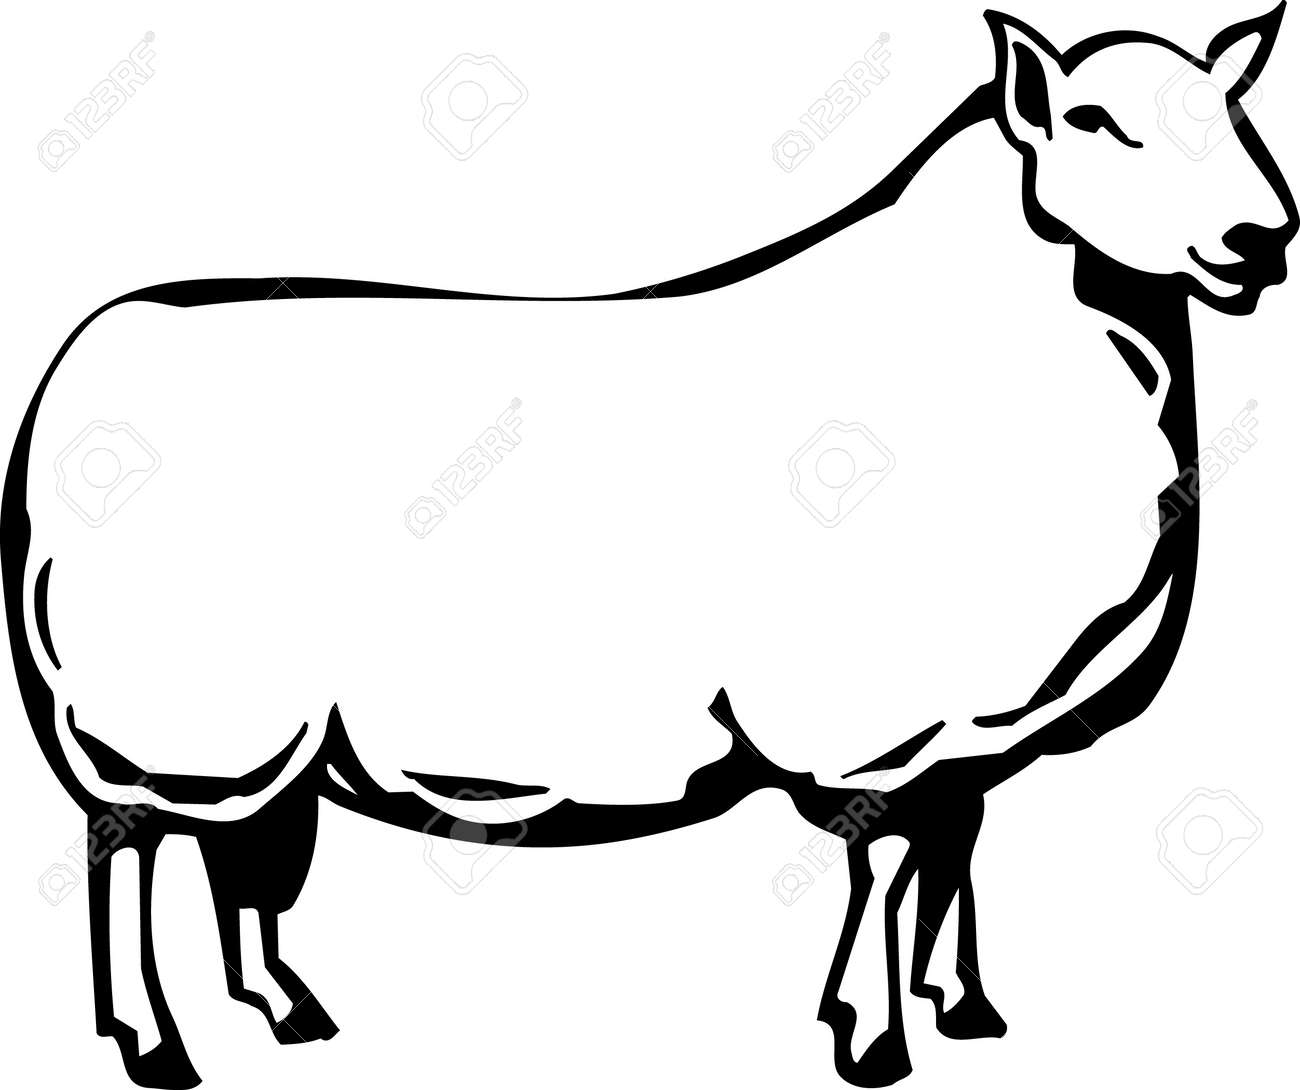 Sheep Stock Vector - 13014906